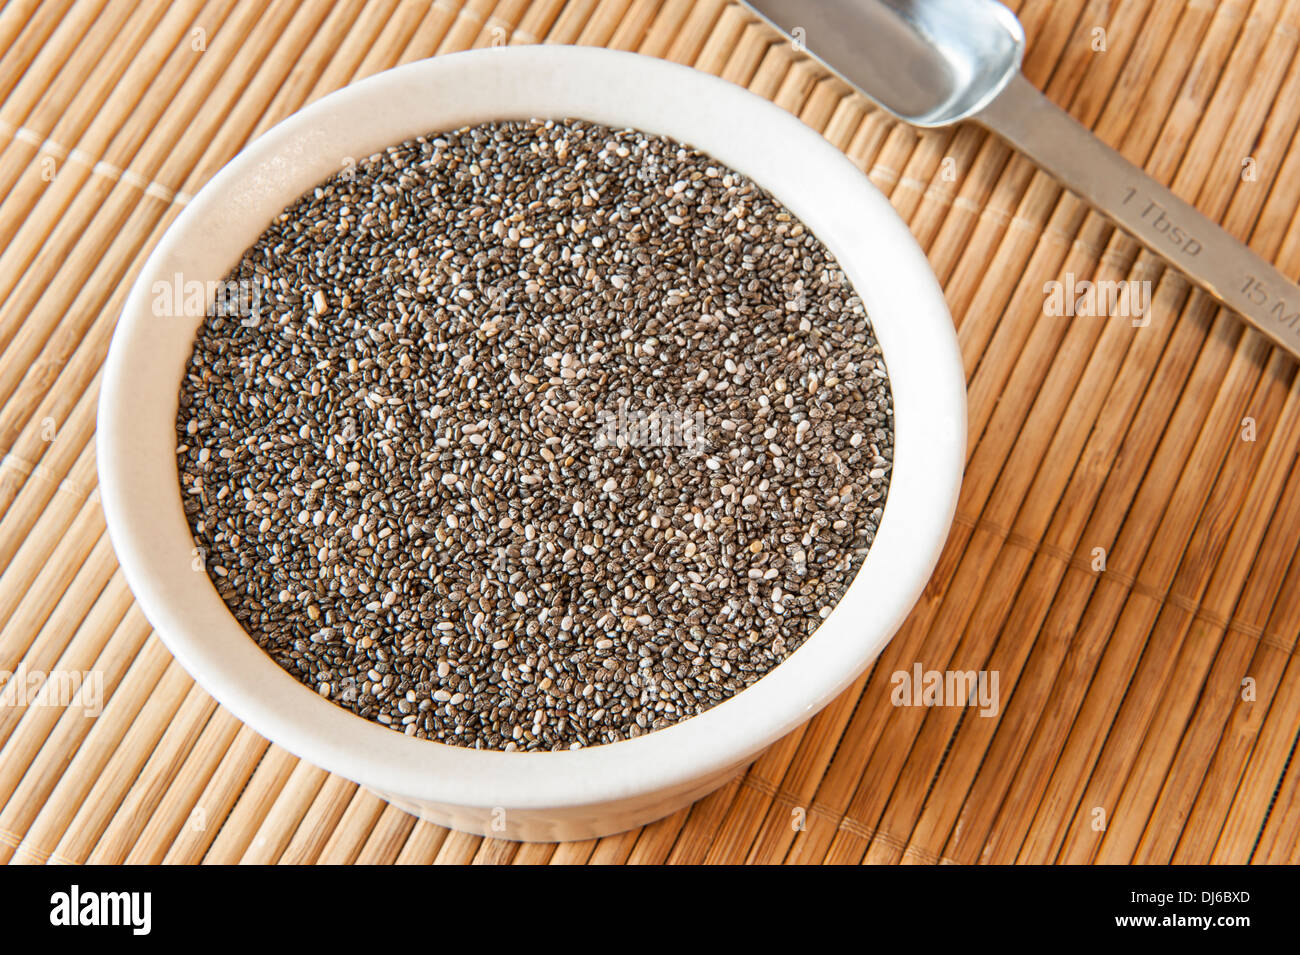 Dish of chia seeds with a measuring spoon on a bamboo mat - Stock Image